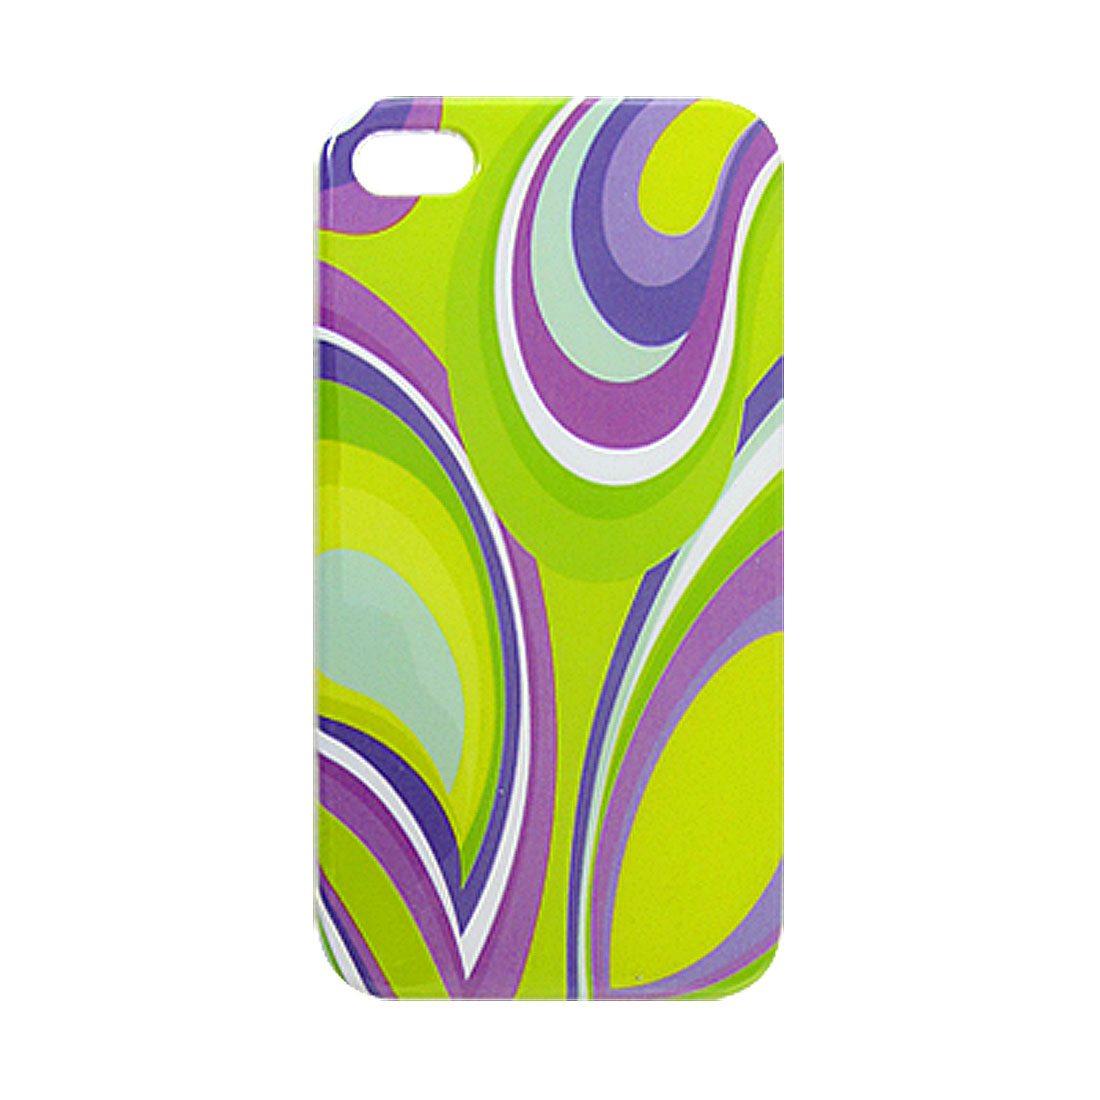 IMD Colorful Hard Plastic Back Case Cover Shell for iPhone 4 4G 4S